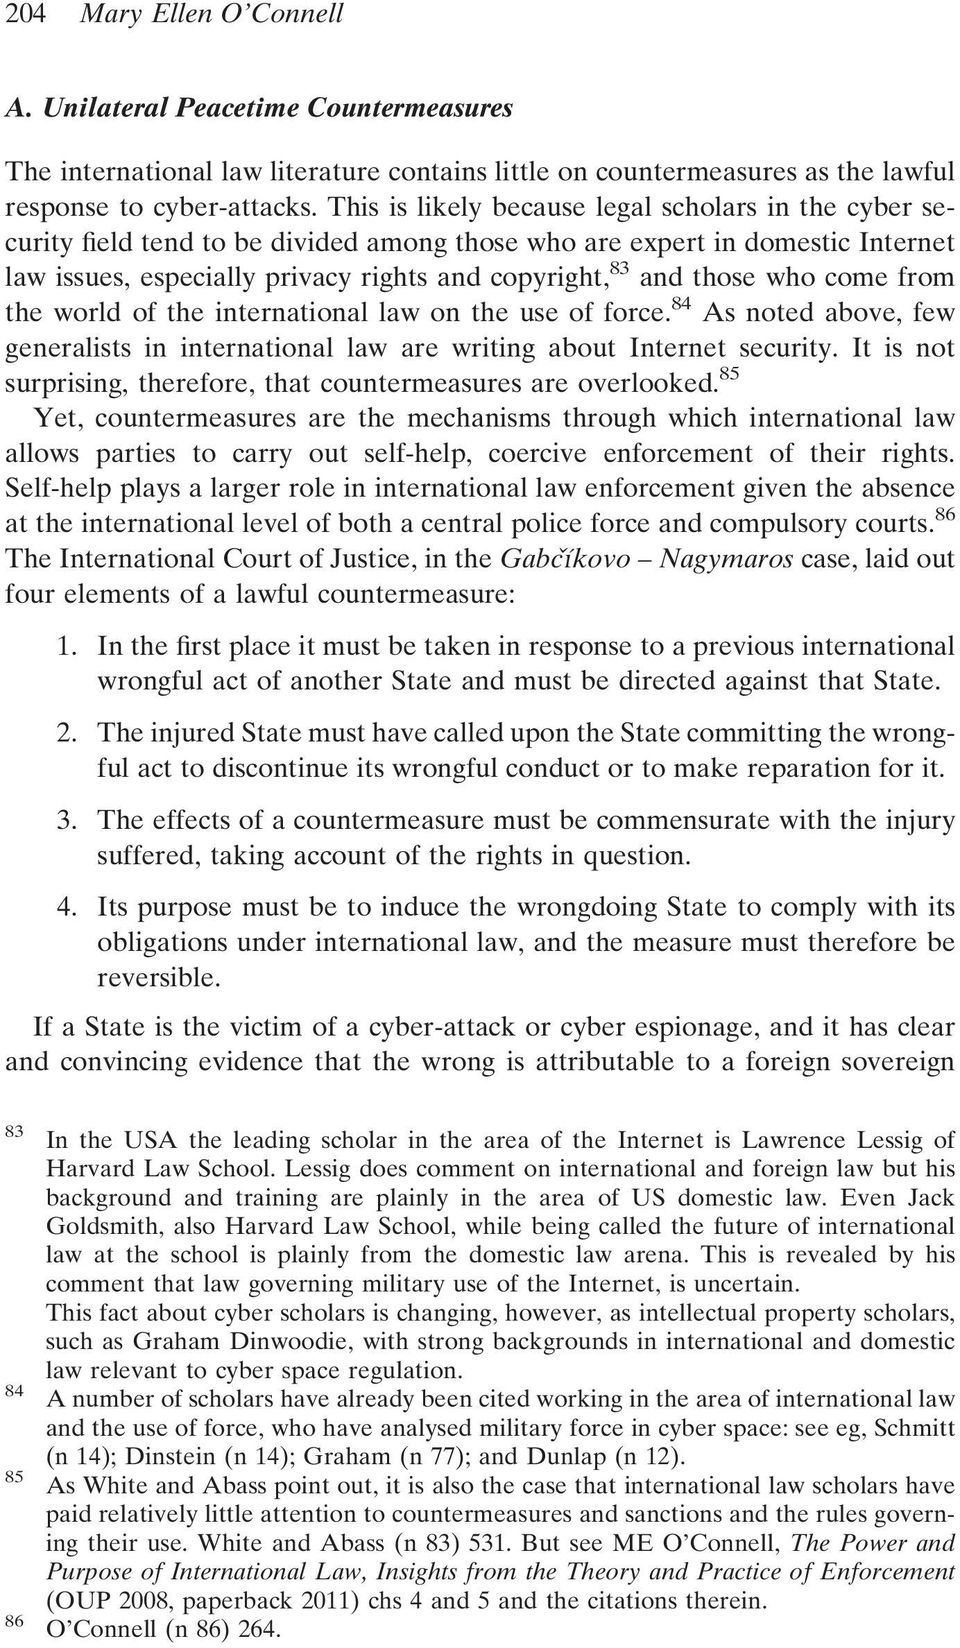 who come from the world of the international law on the use of force. 84 As noted above, few generalists in international law are writing about Internet security.